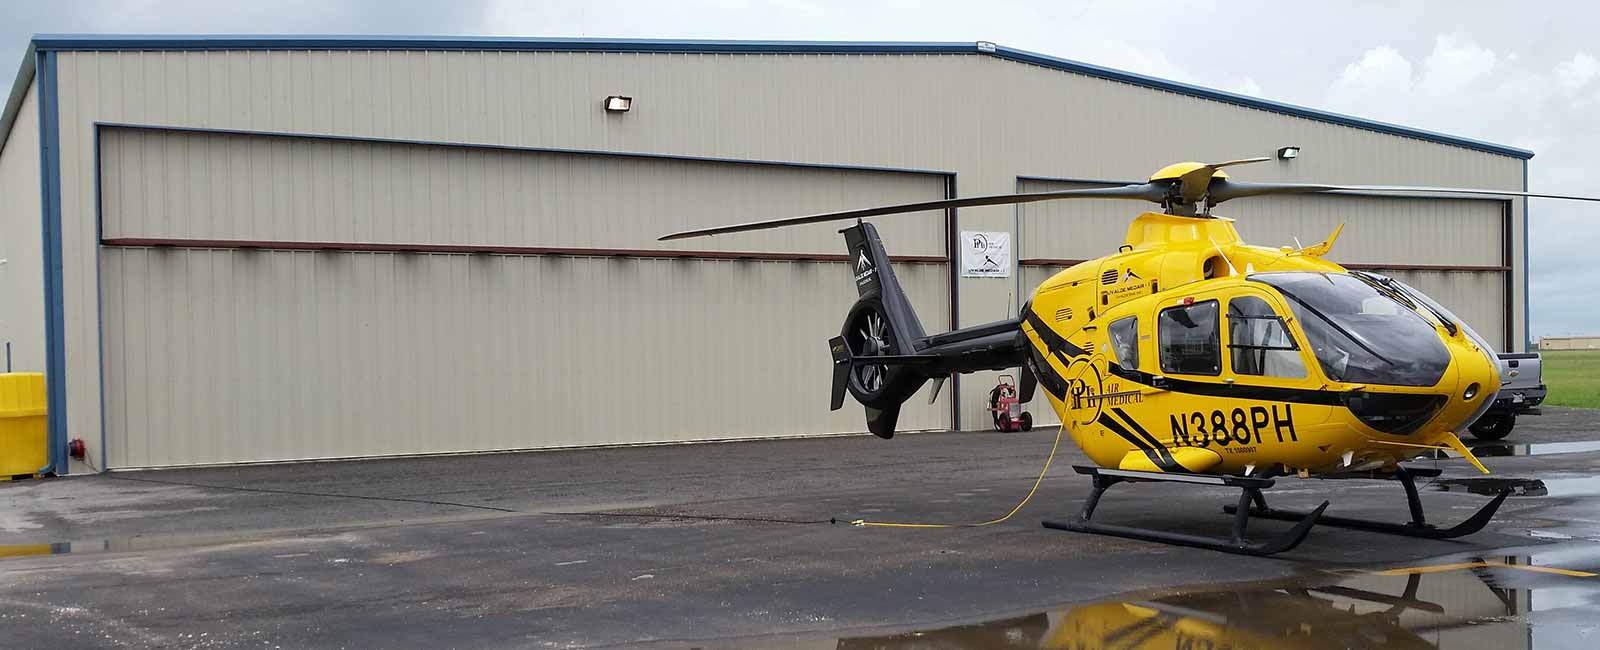 Exterior photo of a Hangar wiith a helicopter parked outside